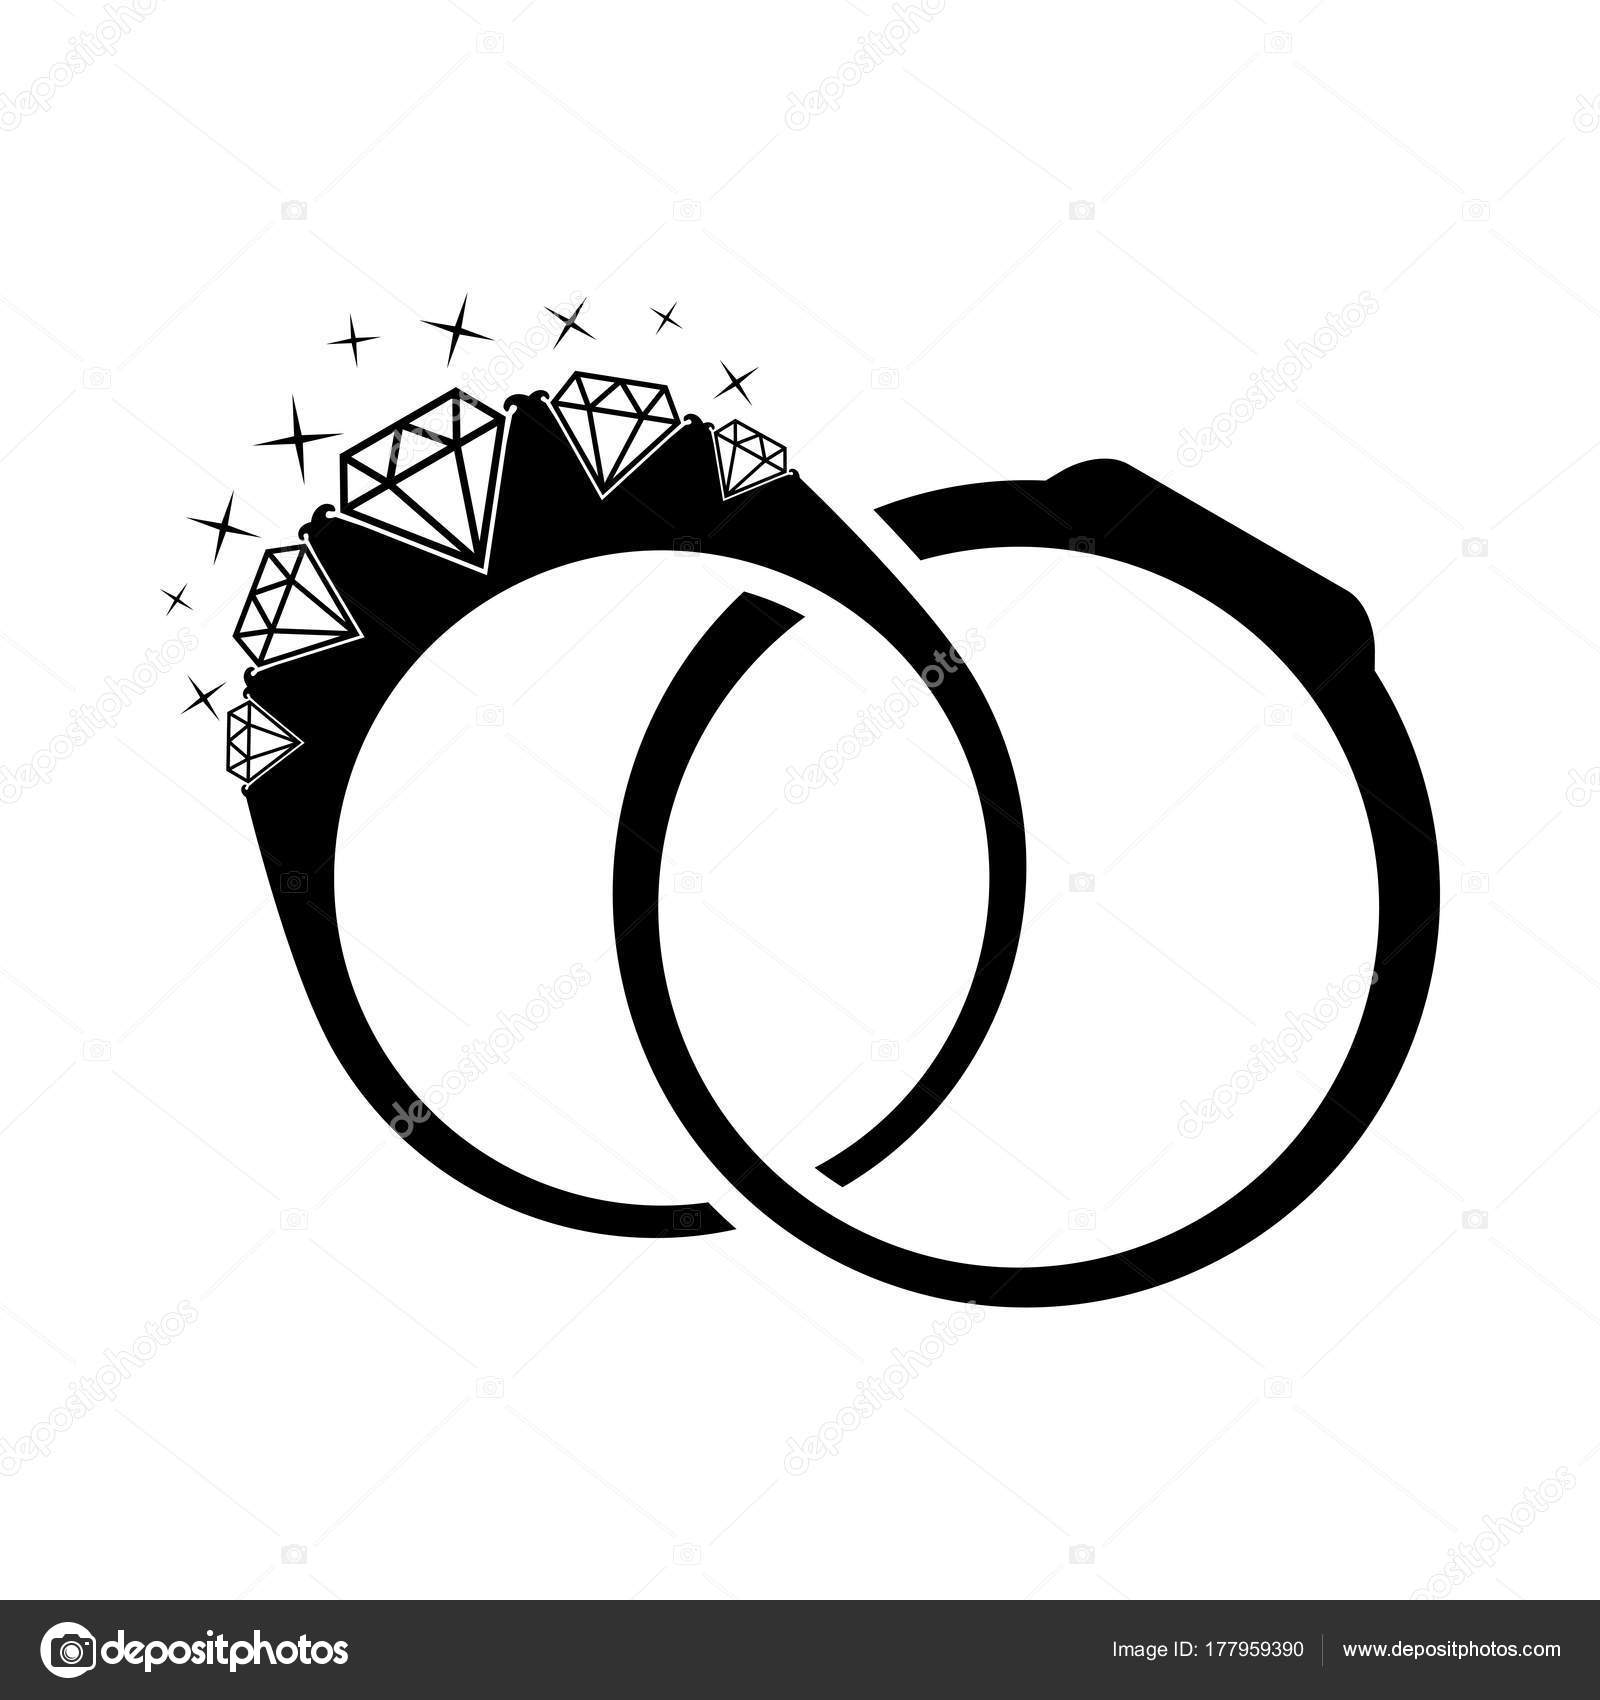 Wedding Rings With Diamond Illustration Silhouette Diamonds On A White Background: And Wedding White Rings Black Sulowett At Reisefeber.org